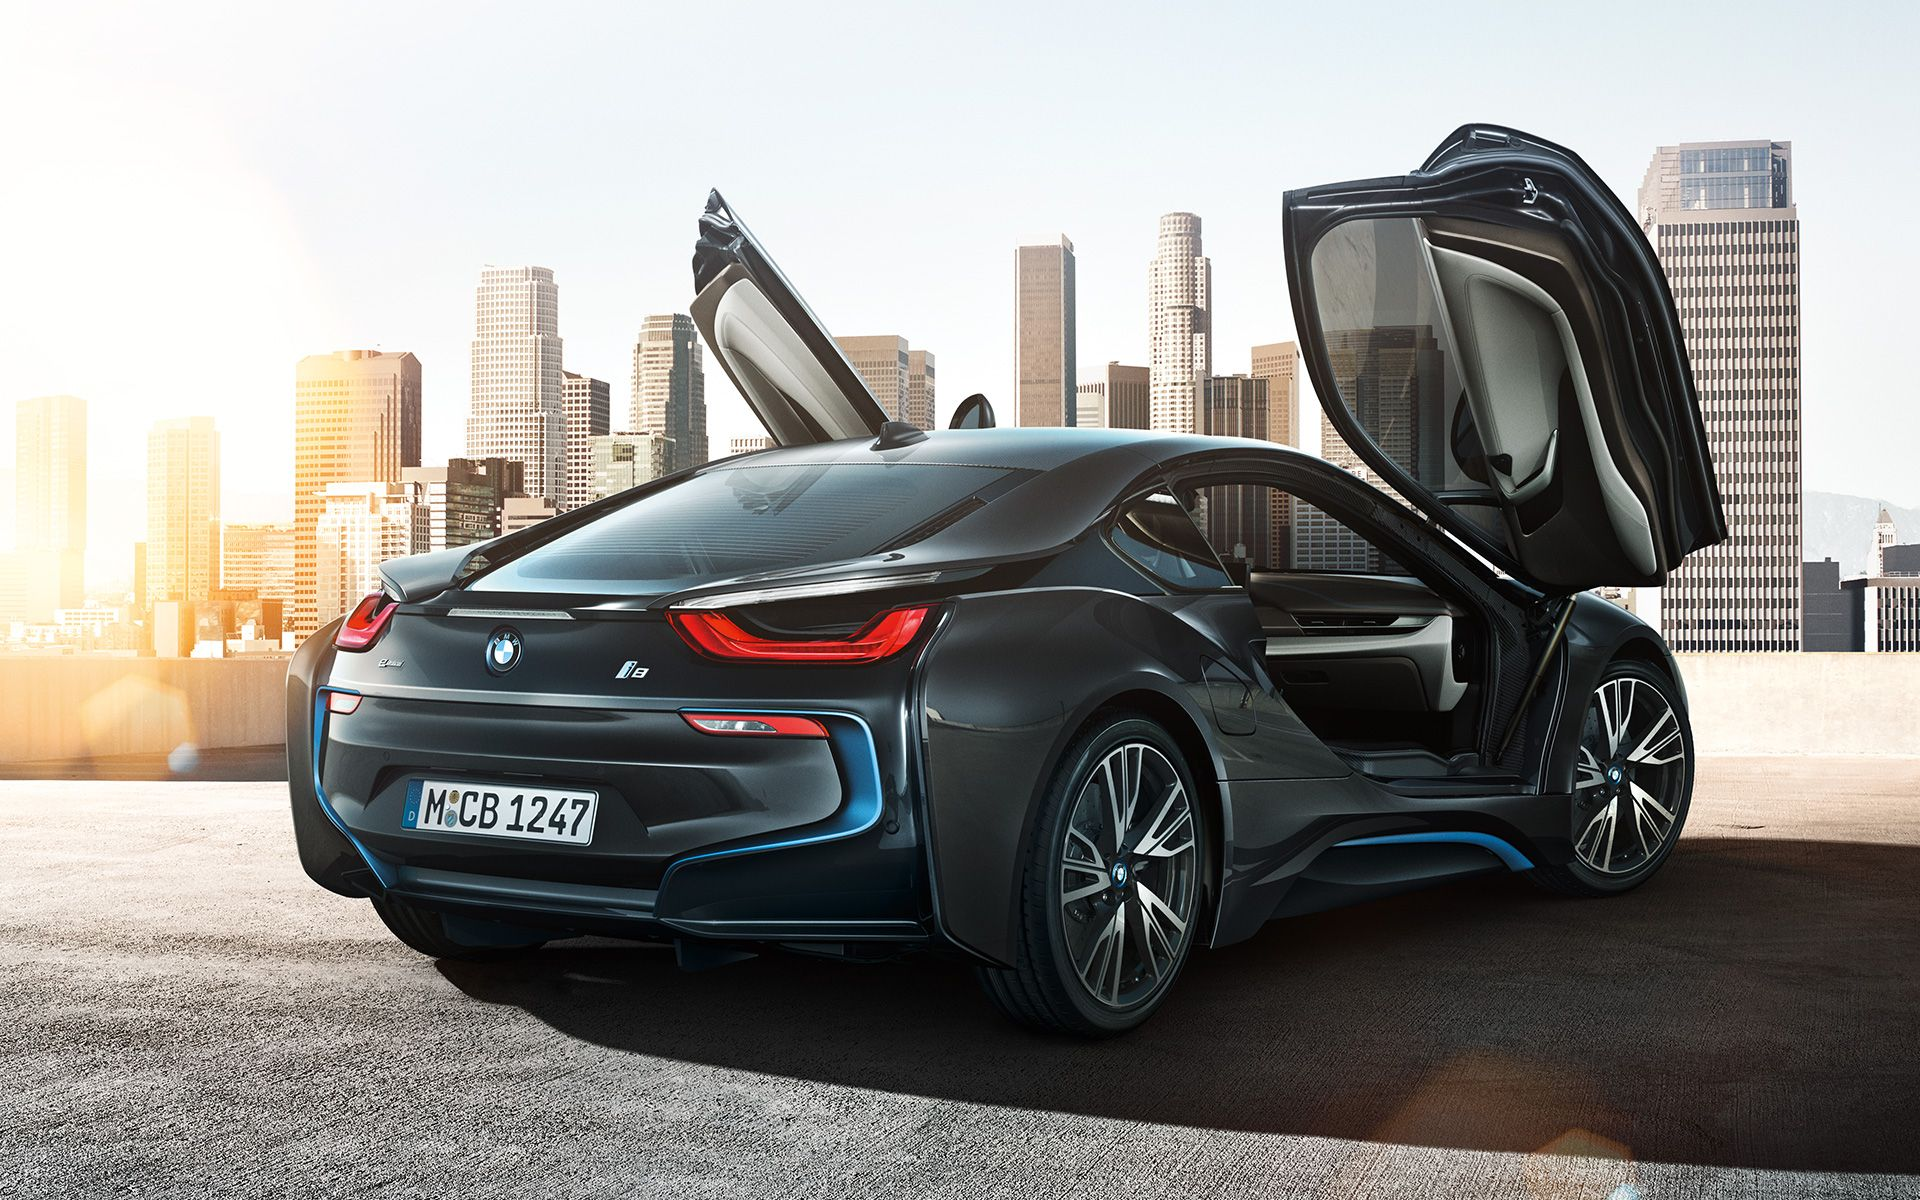 are you looking for bmw i8 hd wallpapers? download latest collection